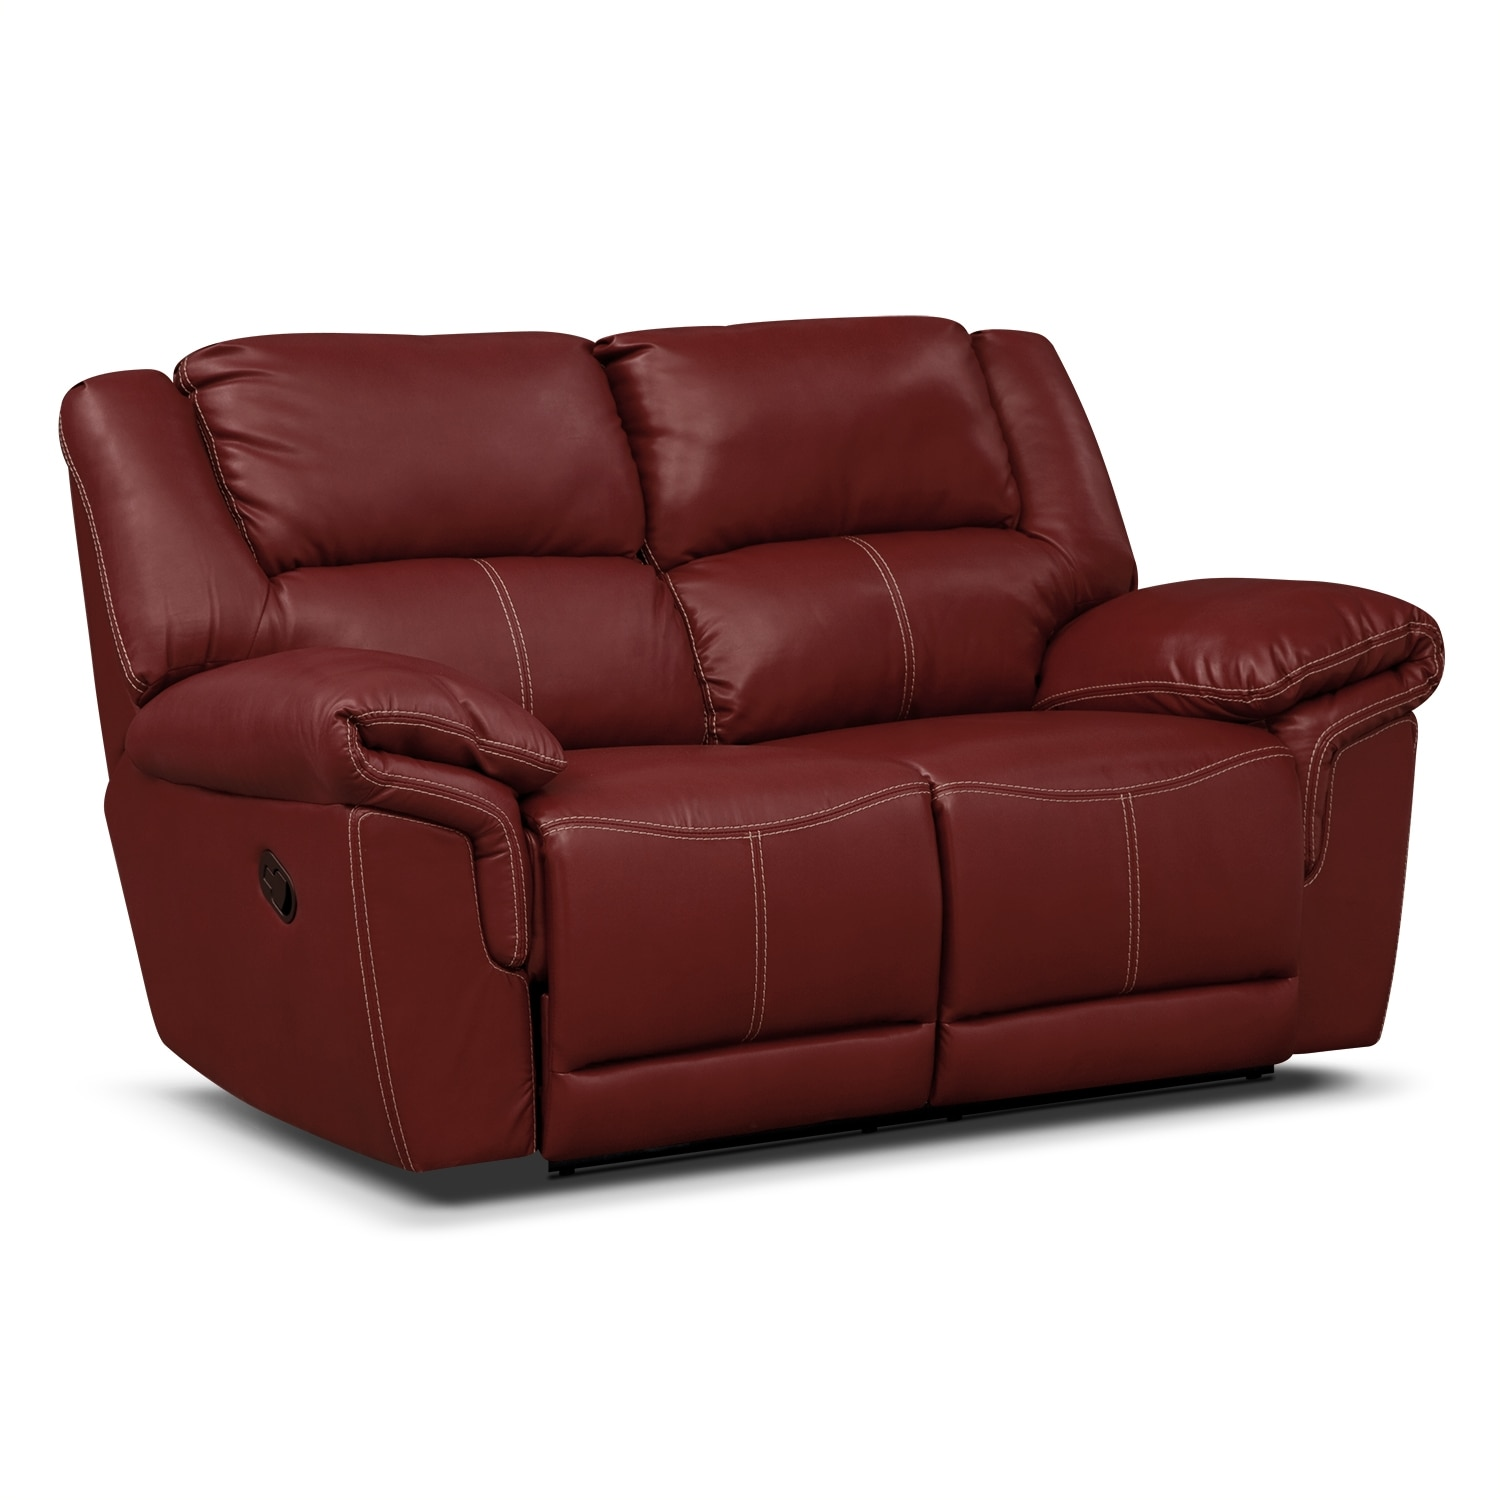 Reclining loveseat sale 28 images cheap reclining sofas sale fabric recliner sofas sale Reclining loveseat sale